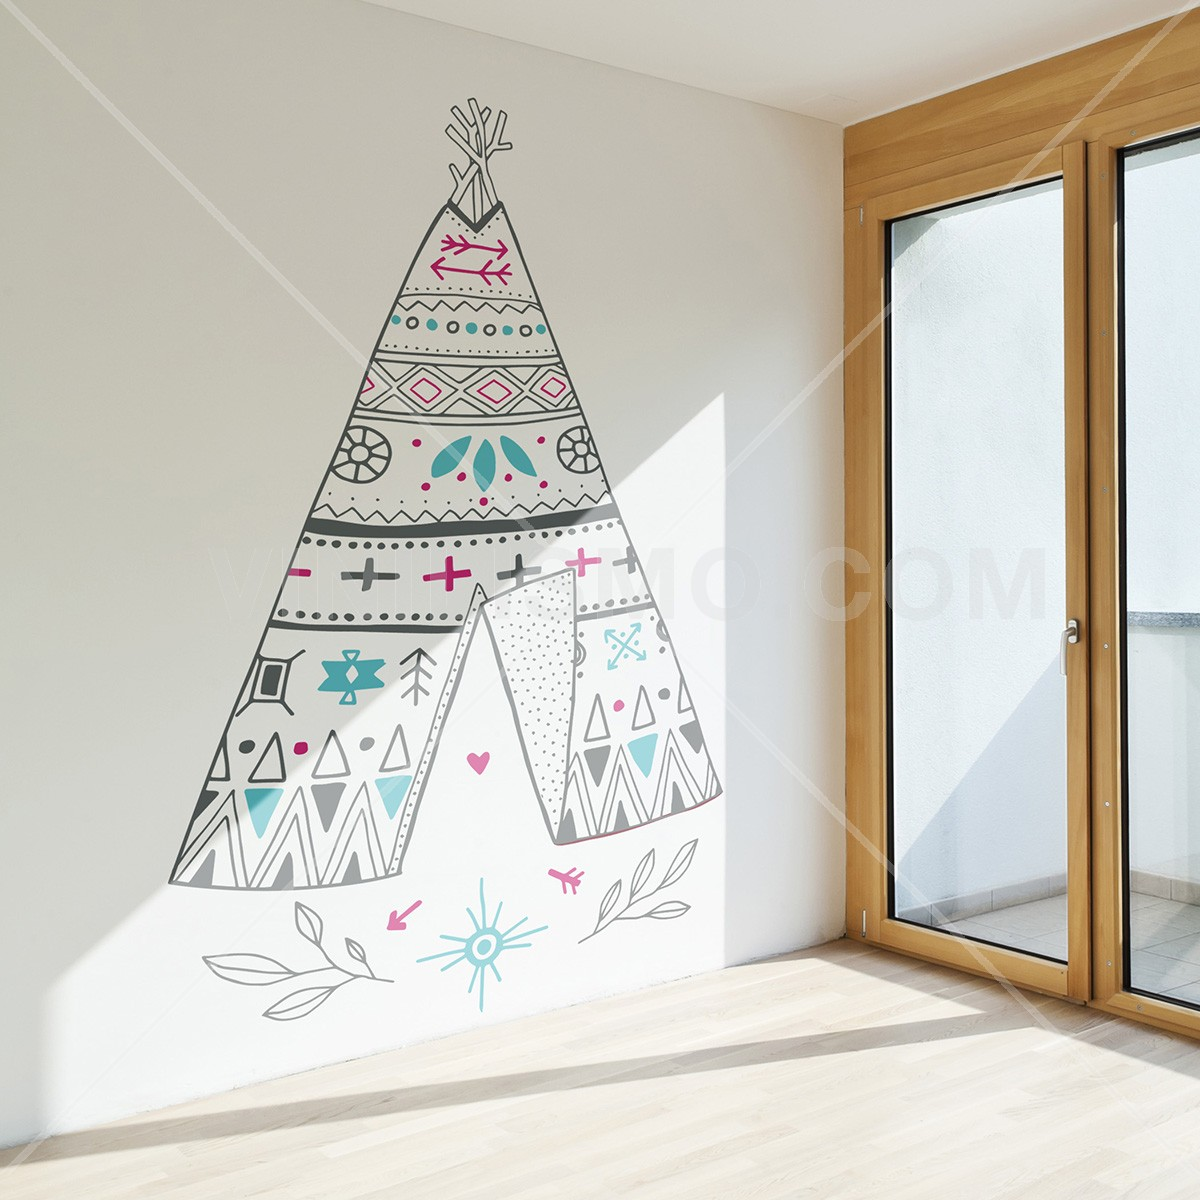 Vinilo Decorativo: Tipi